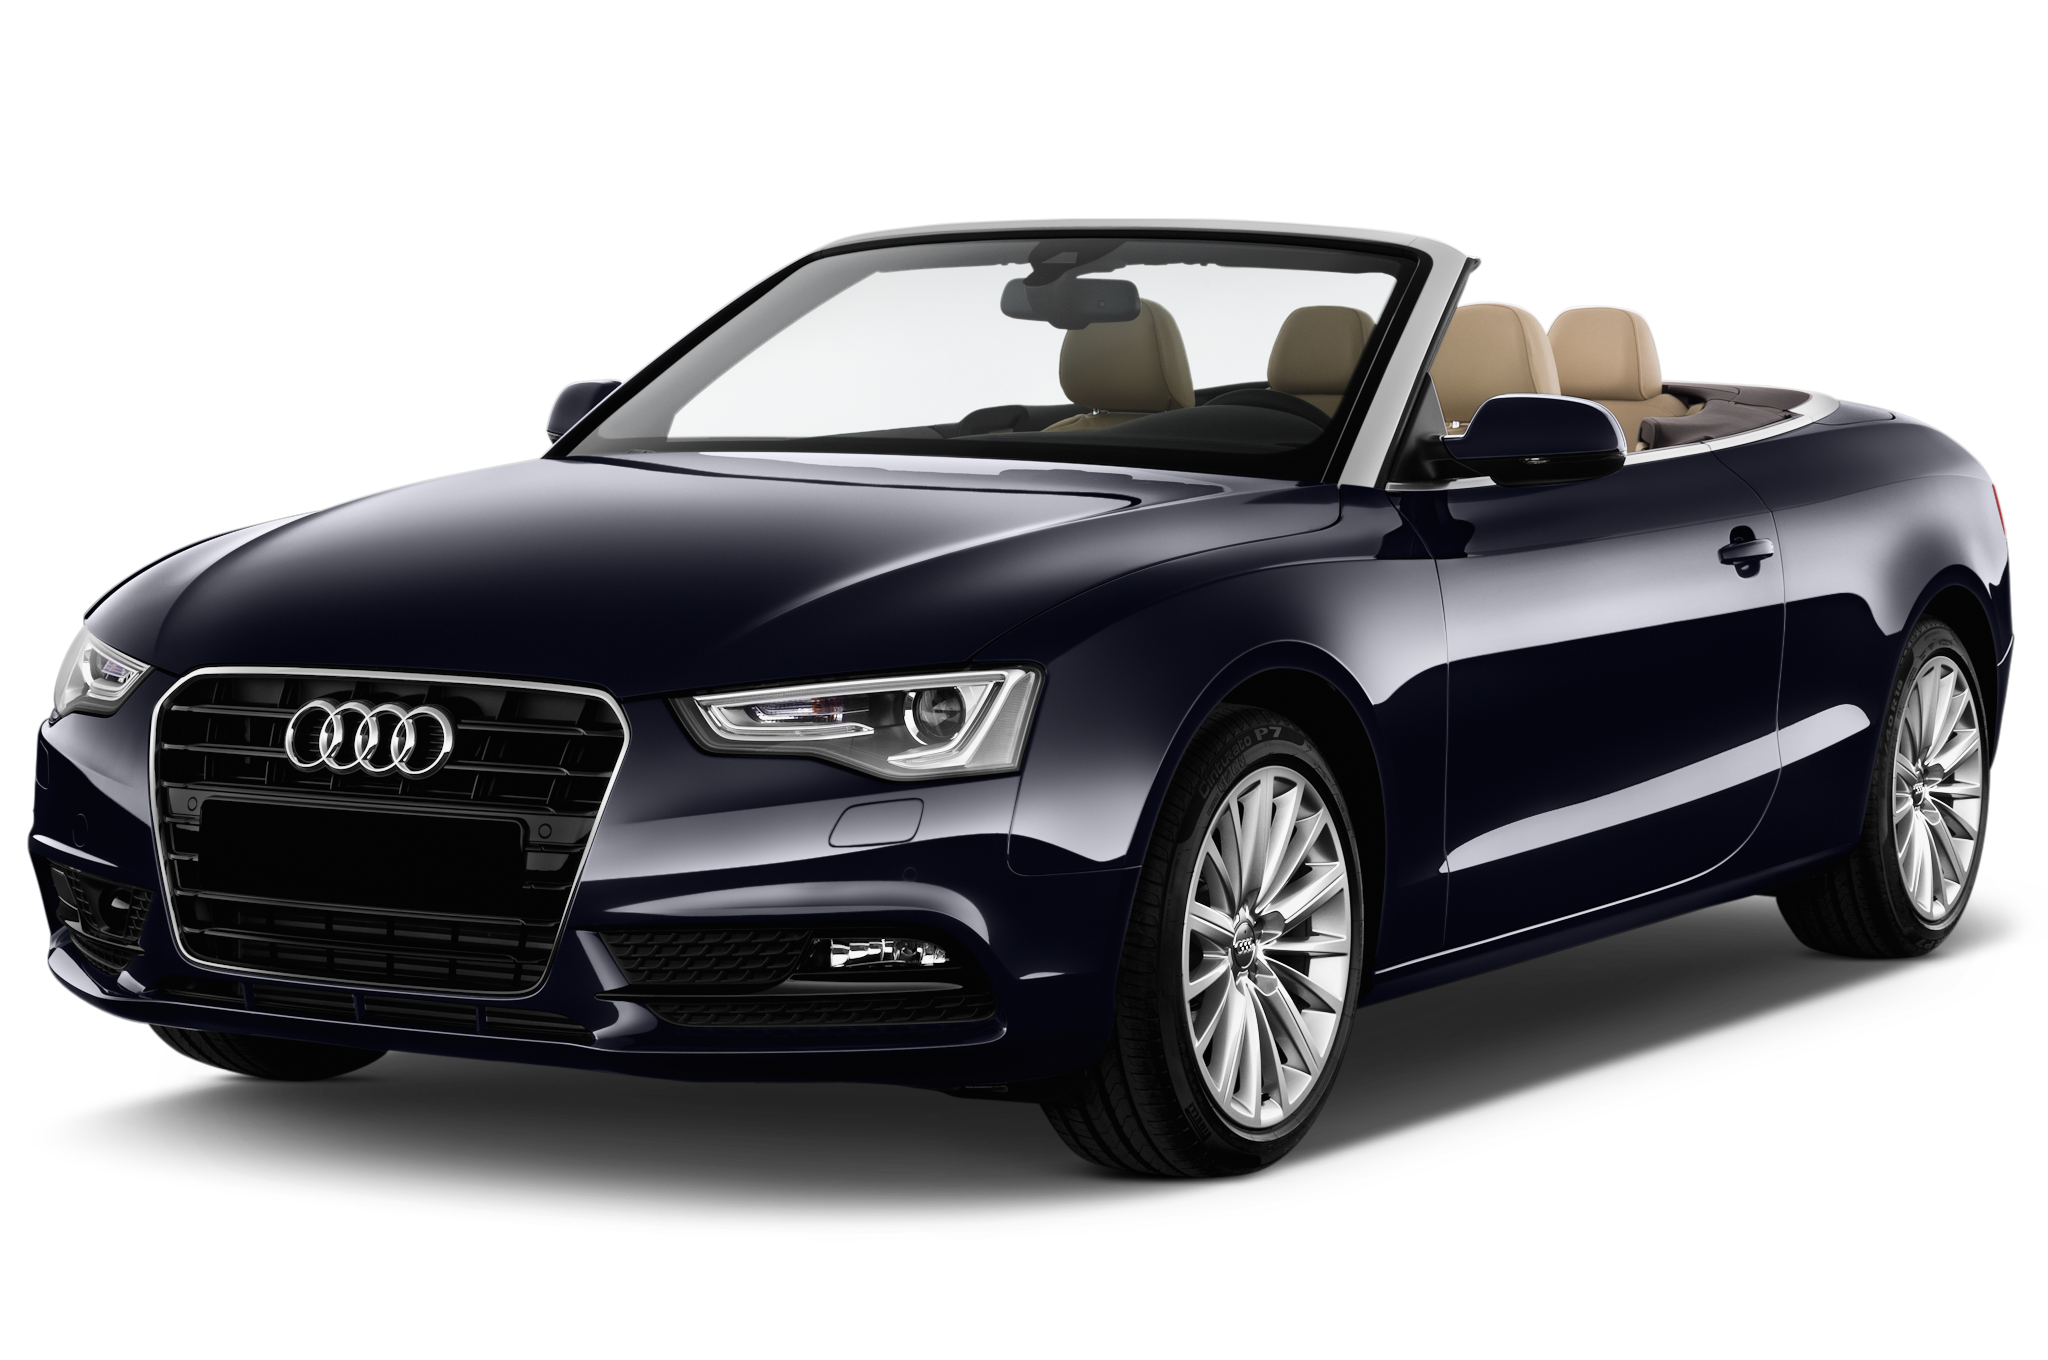 Audi A5 CABRIOLET 2016 - International Price & Overview